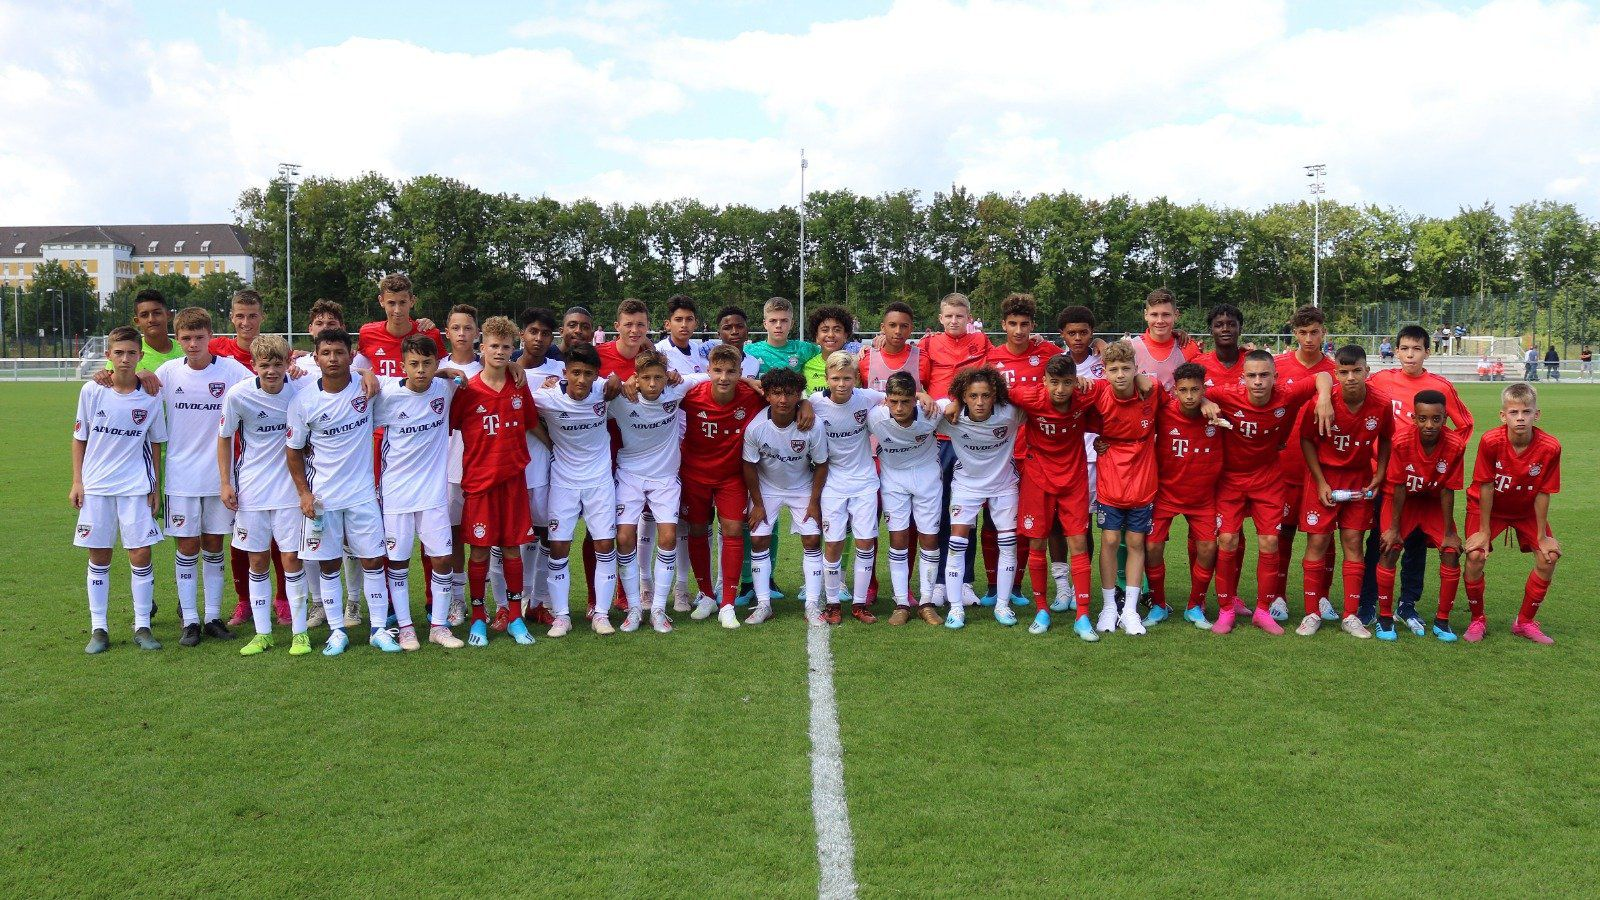 The FC Dallas U15s (in white) pose with the Bayern Munich U15s (in red) after their opening round game.